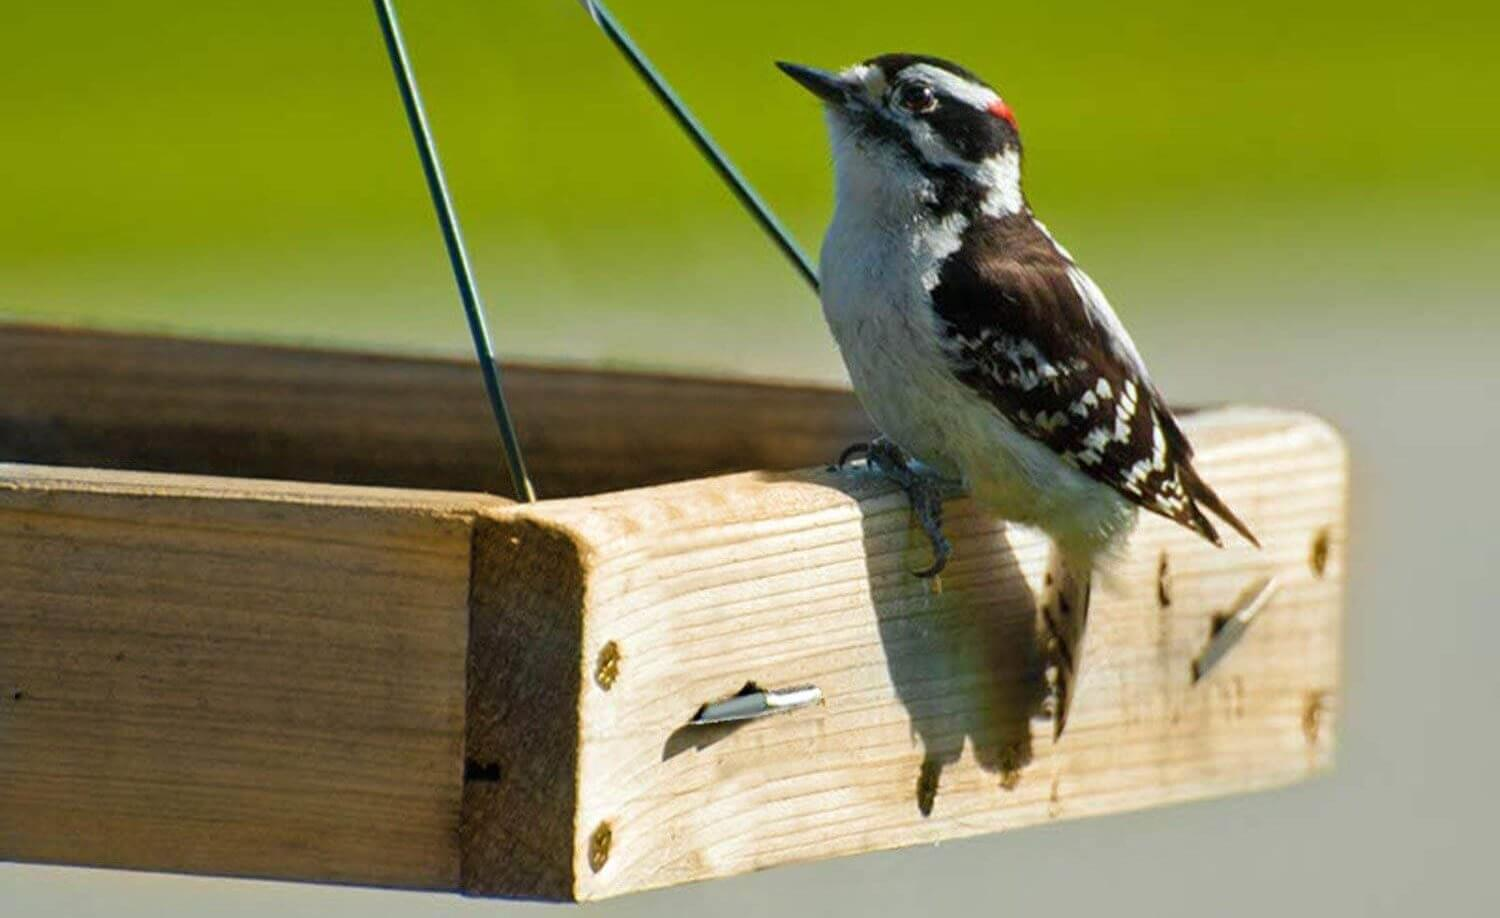 tray feeder for feeding suet nuggets and cakes